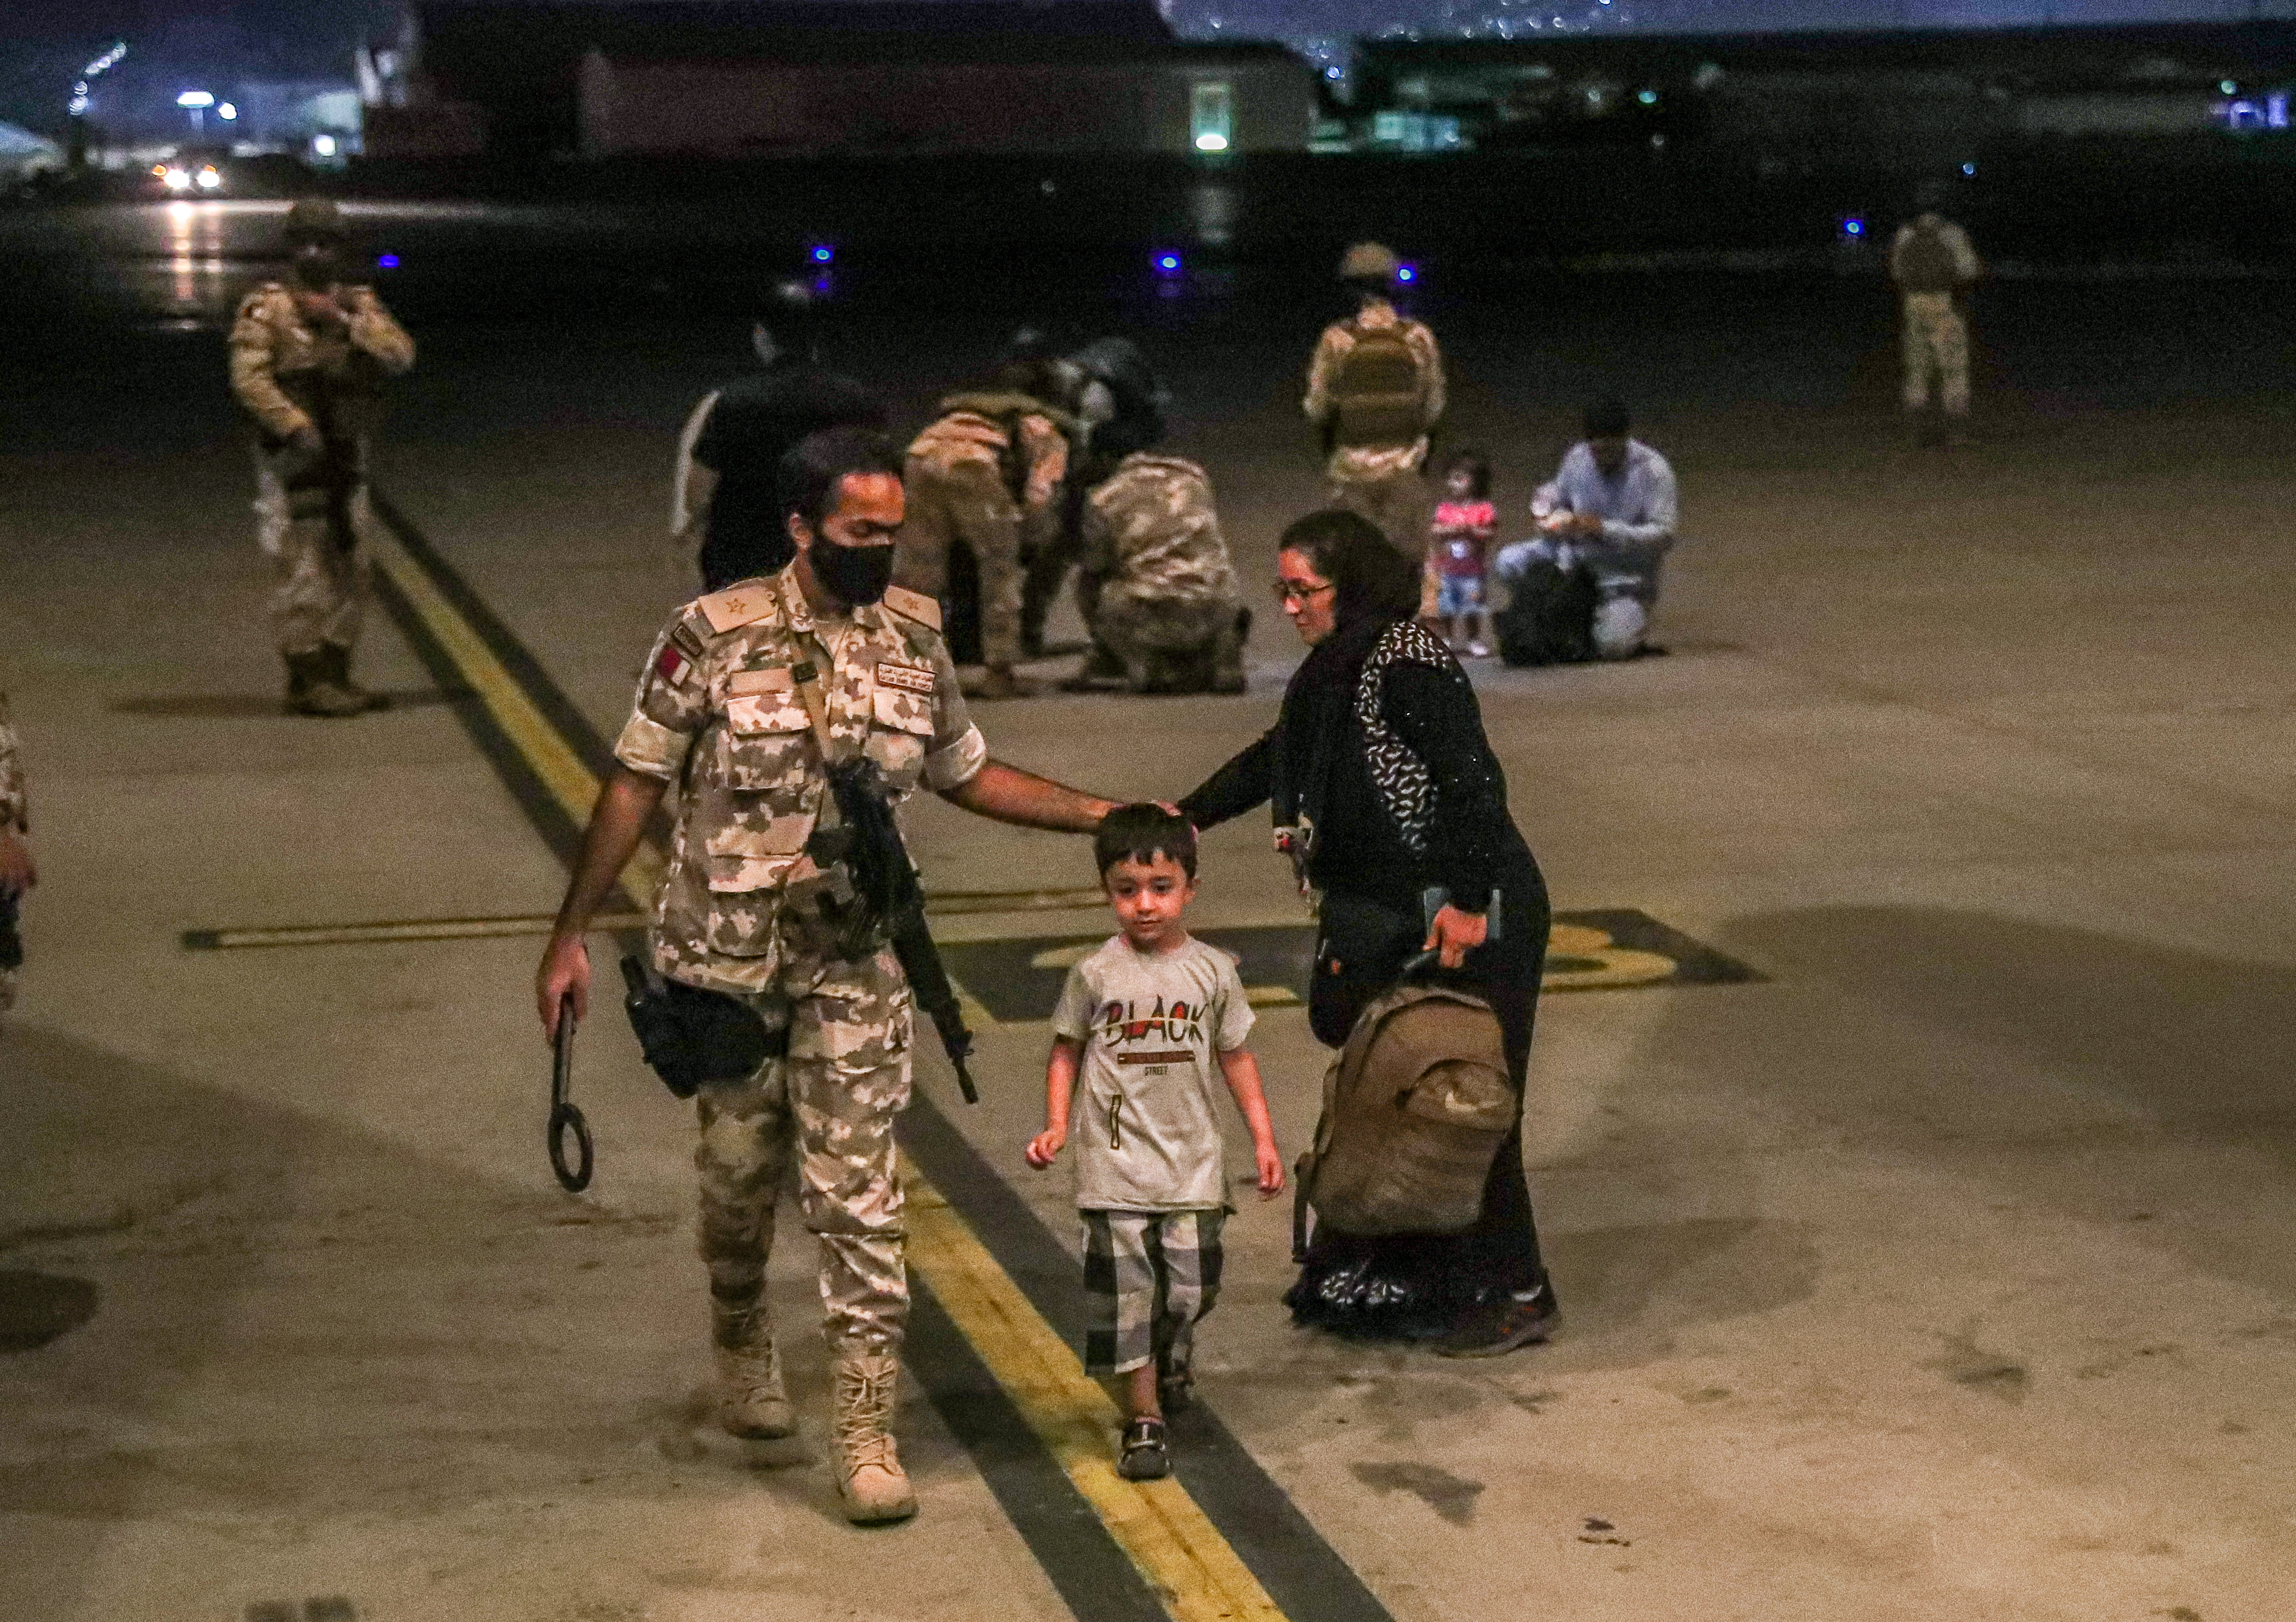 A member of the Qatar Air force walks next to a boy evacuated from Afghanistan, at Al-Udeid airbase in Doha, Qatar in this recent undated handout. Government Communications Office of the State of Qatar/Handout via REUTERS